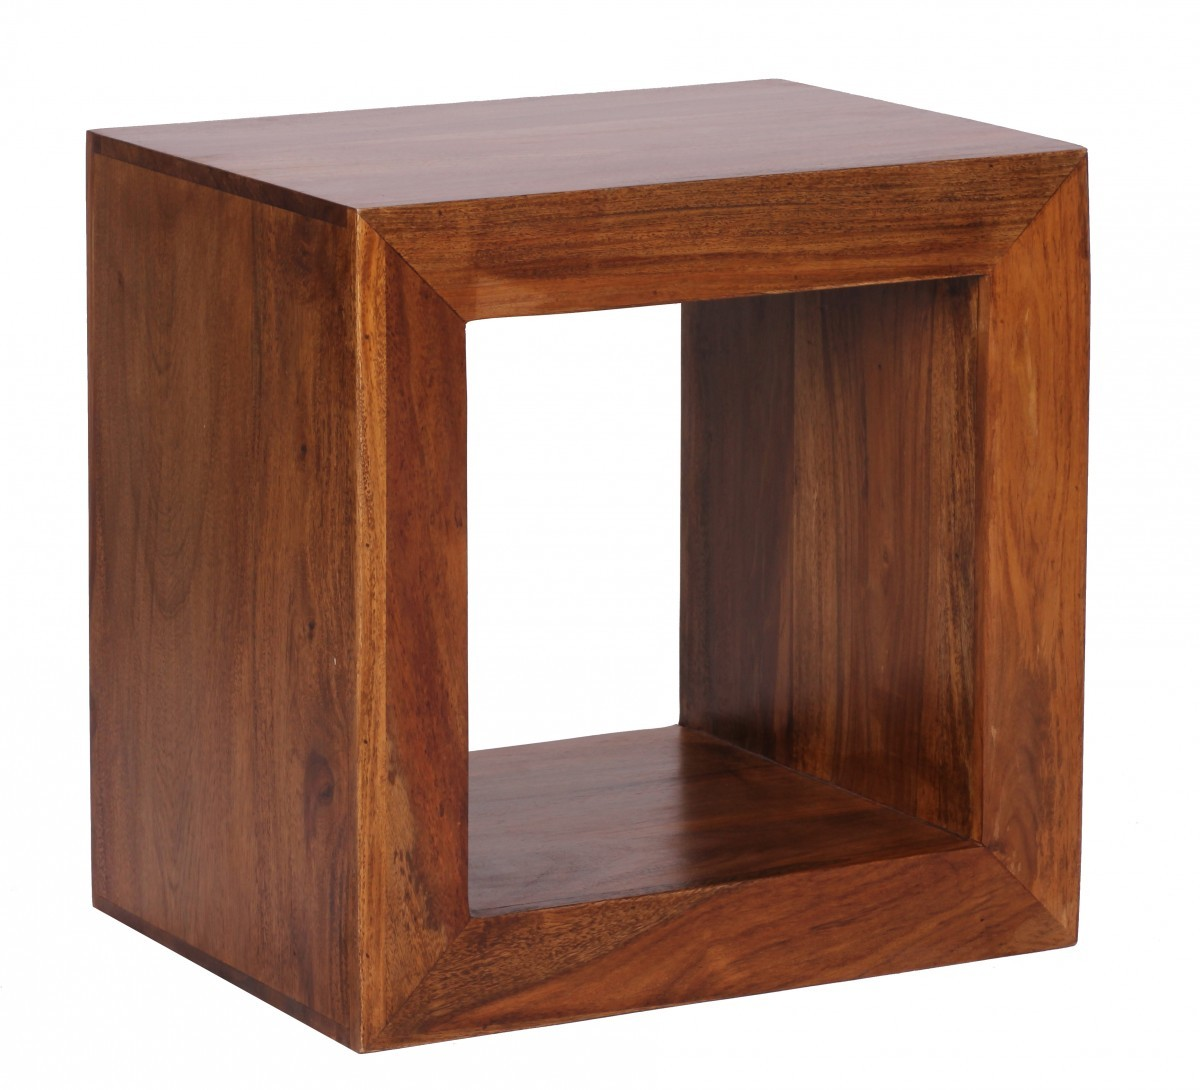 finebuy standregal massivholz sheesham 44cm hoch cube regal design holzregal naturprodukt. Black Bedroom Furniture Sets. Home Design Ideas